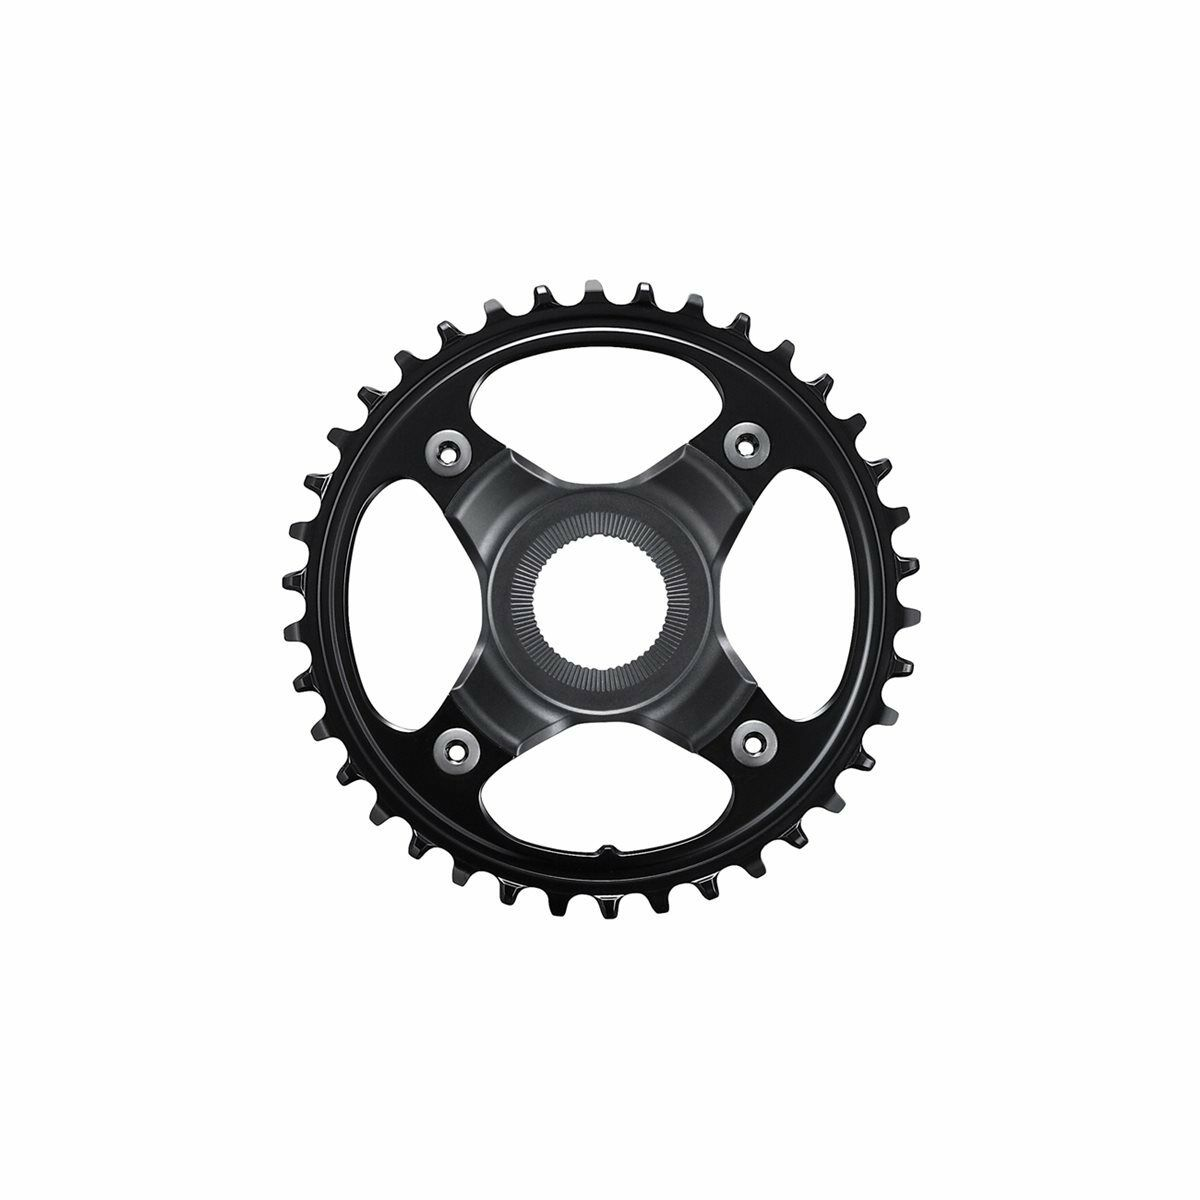 Chainring 34t steps mtb boost 53mm sm-cre80 for fc-e8050 e8000 ISMCRE80BA4X